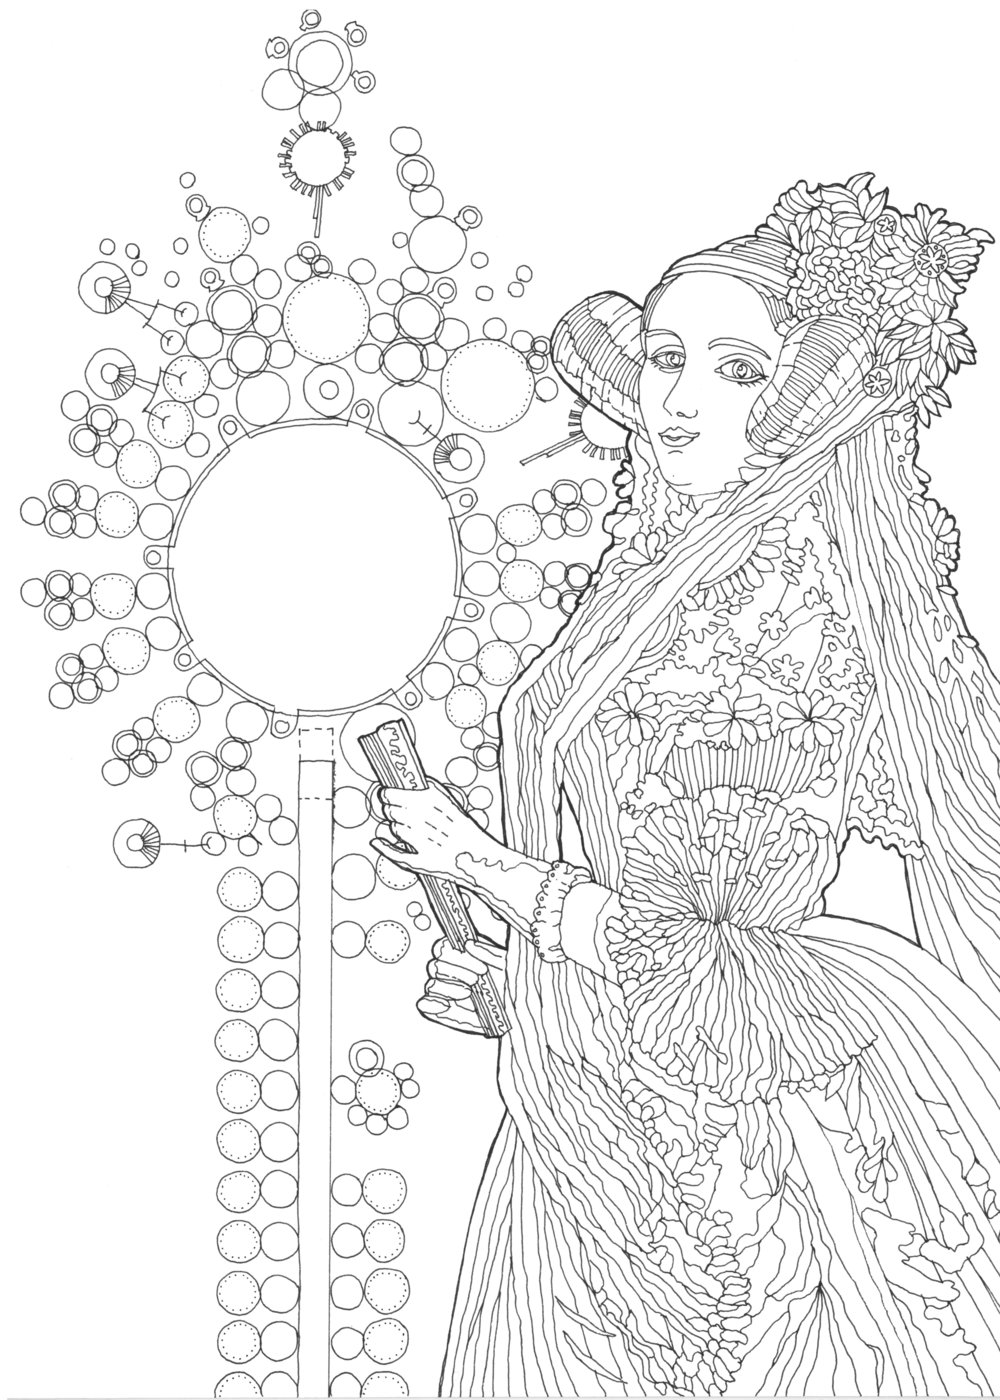 Hand-drawn    illustration    of Ada Lovelace by Jackie Aim, based on a watercolor portrait by Alfred Edward Chalon. Copyright license CC BY-SA 2.0.